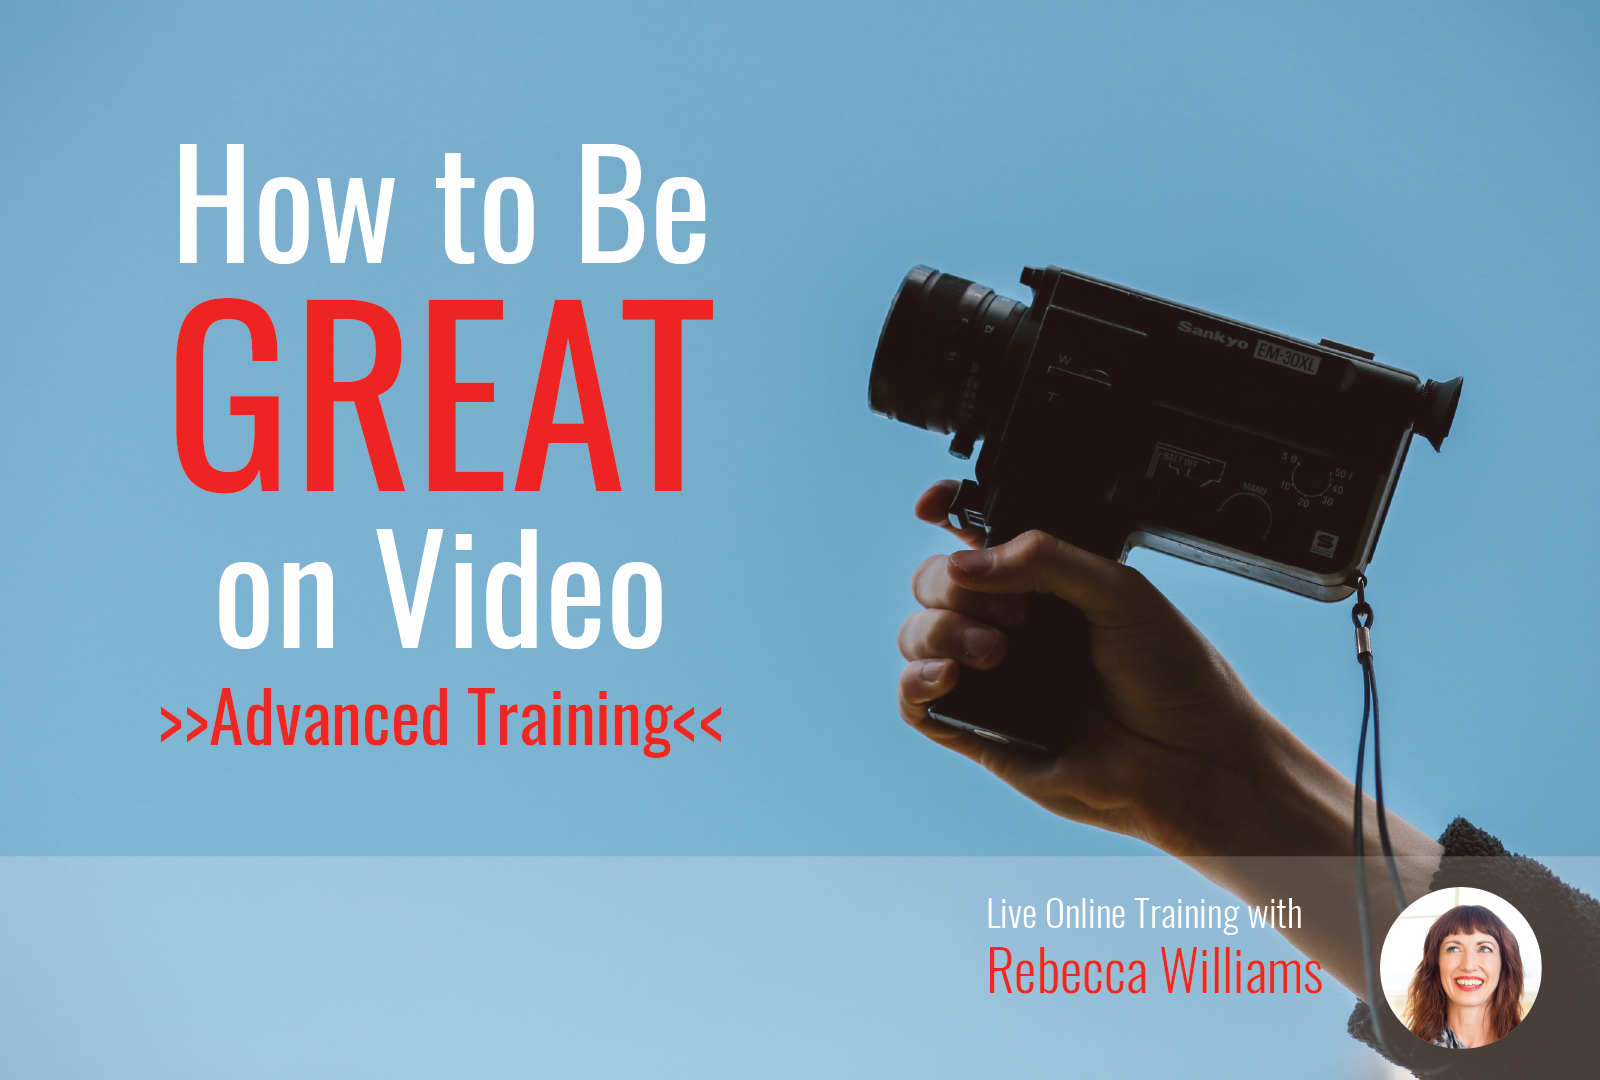 How To Be Great on Video—Advanced Training